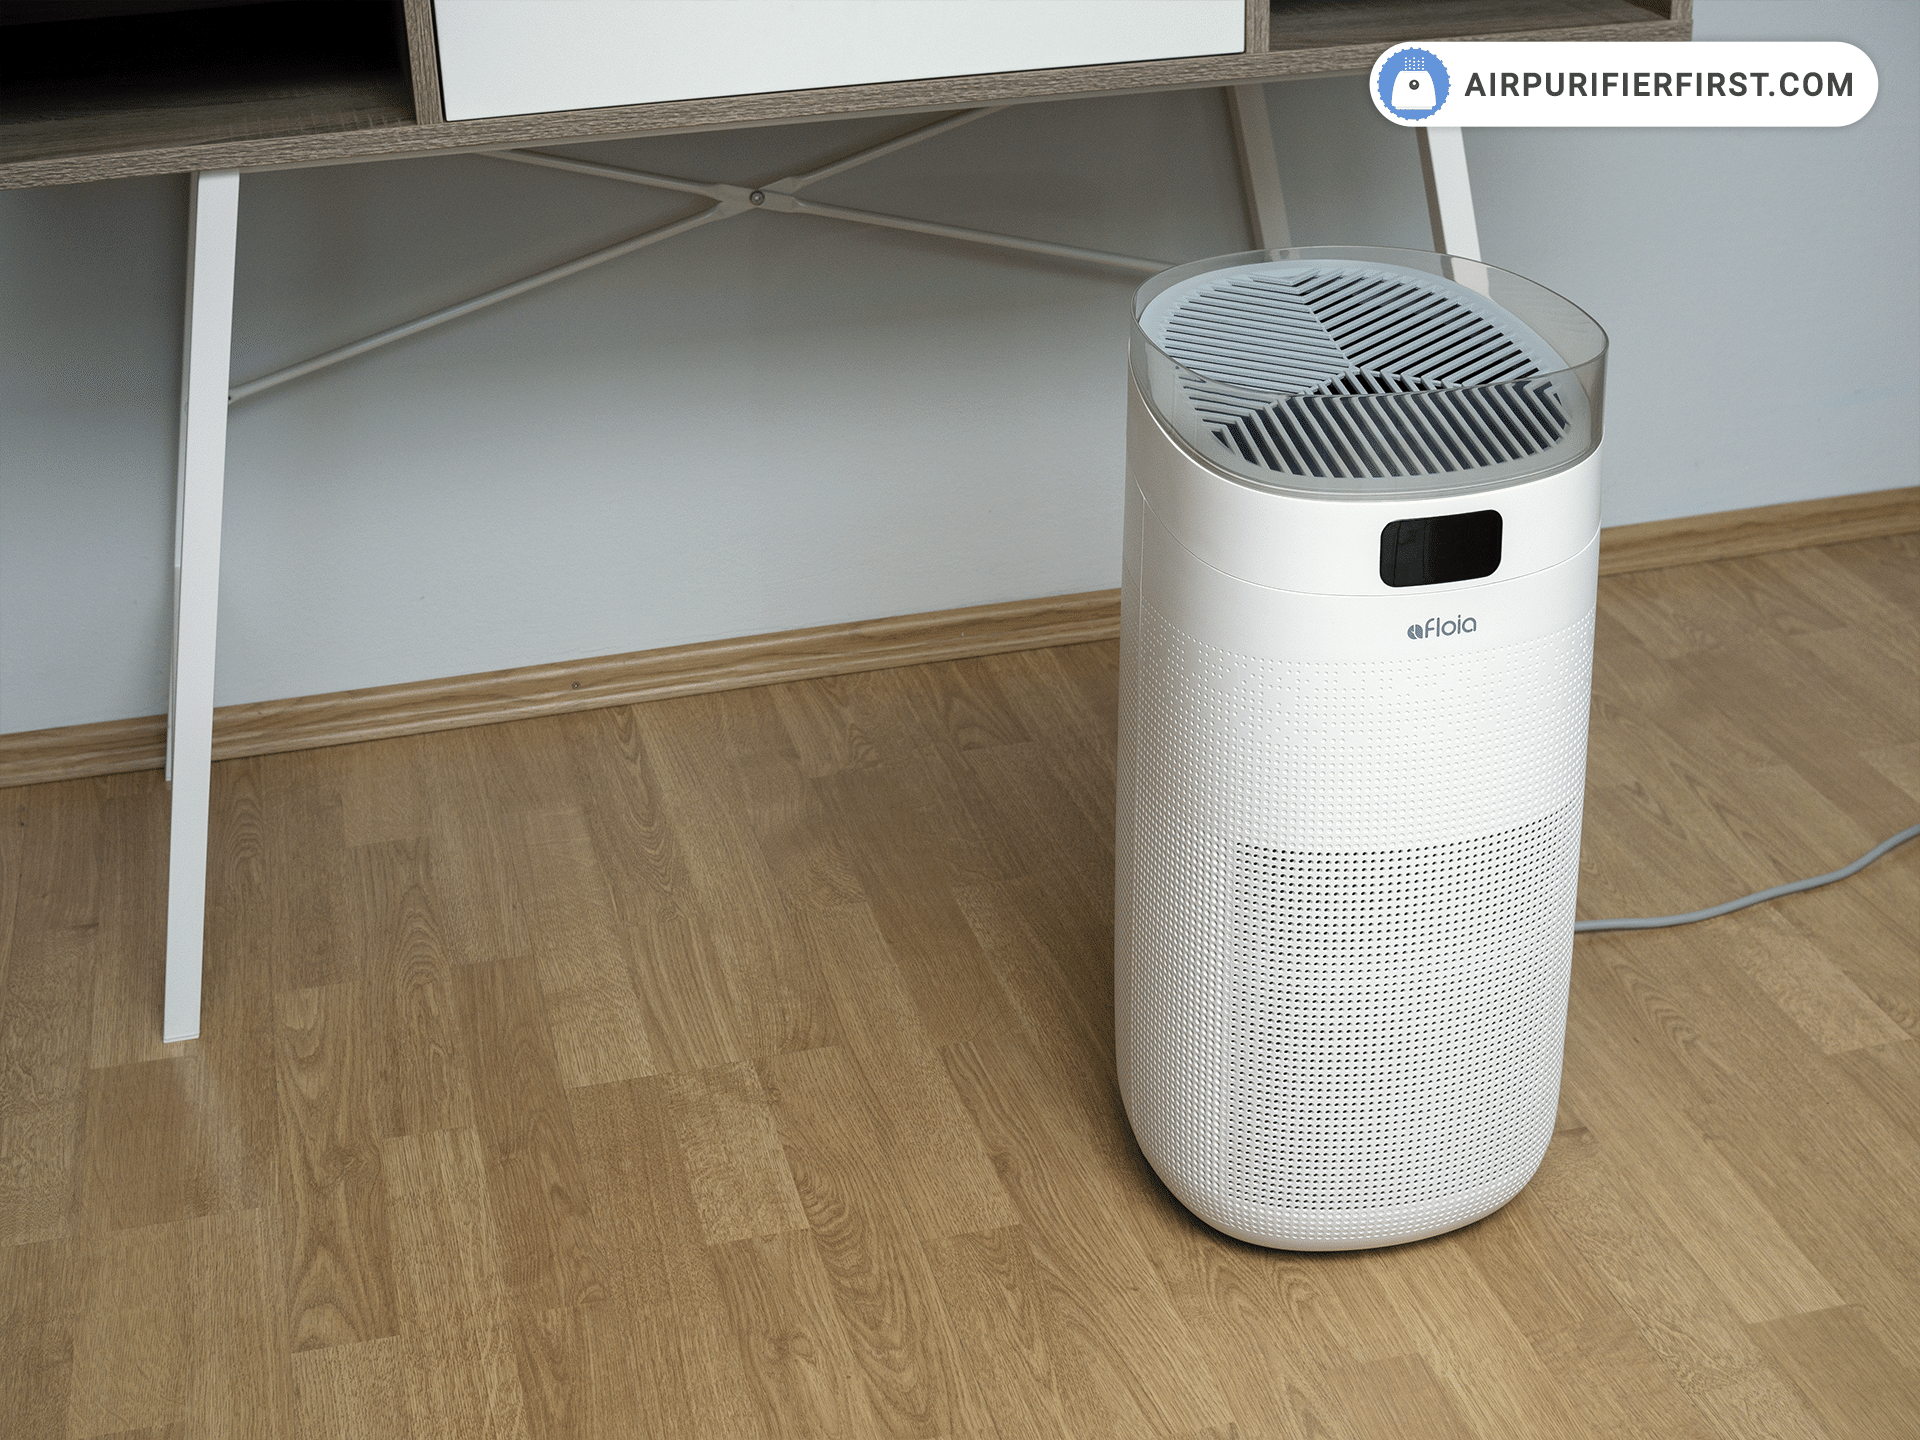 Afloia Mage Air Purifier - Review